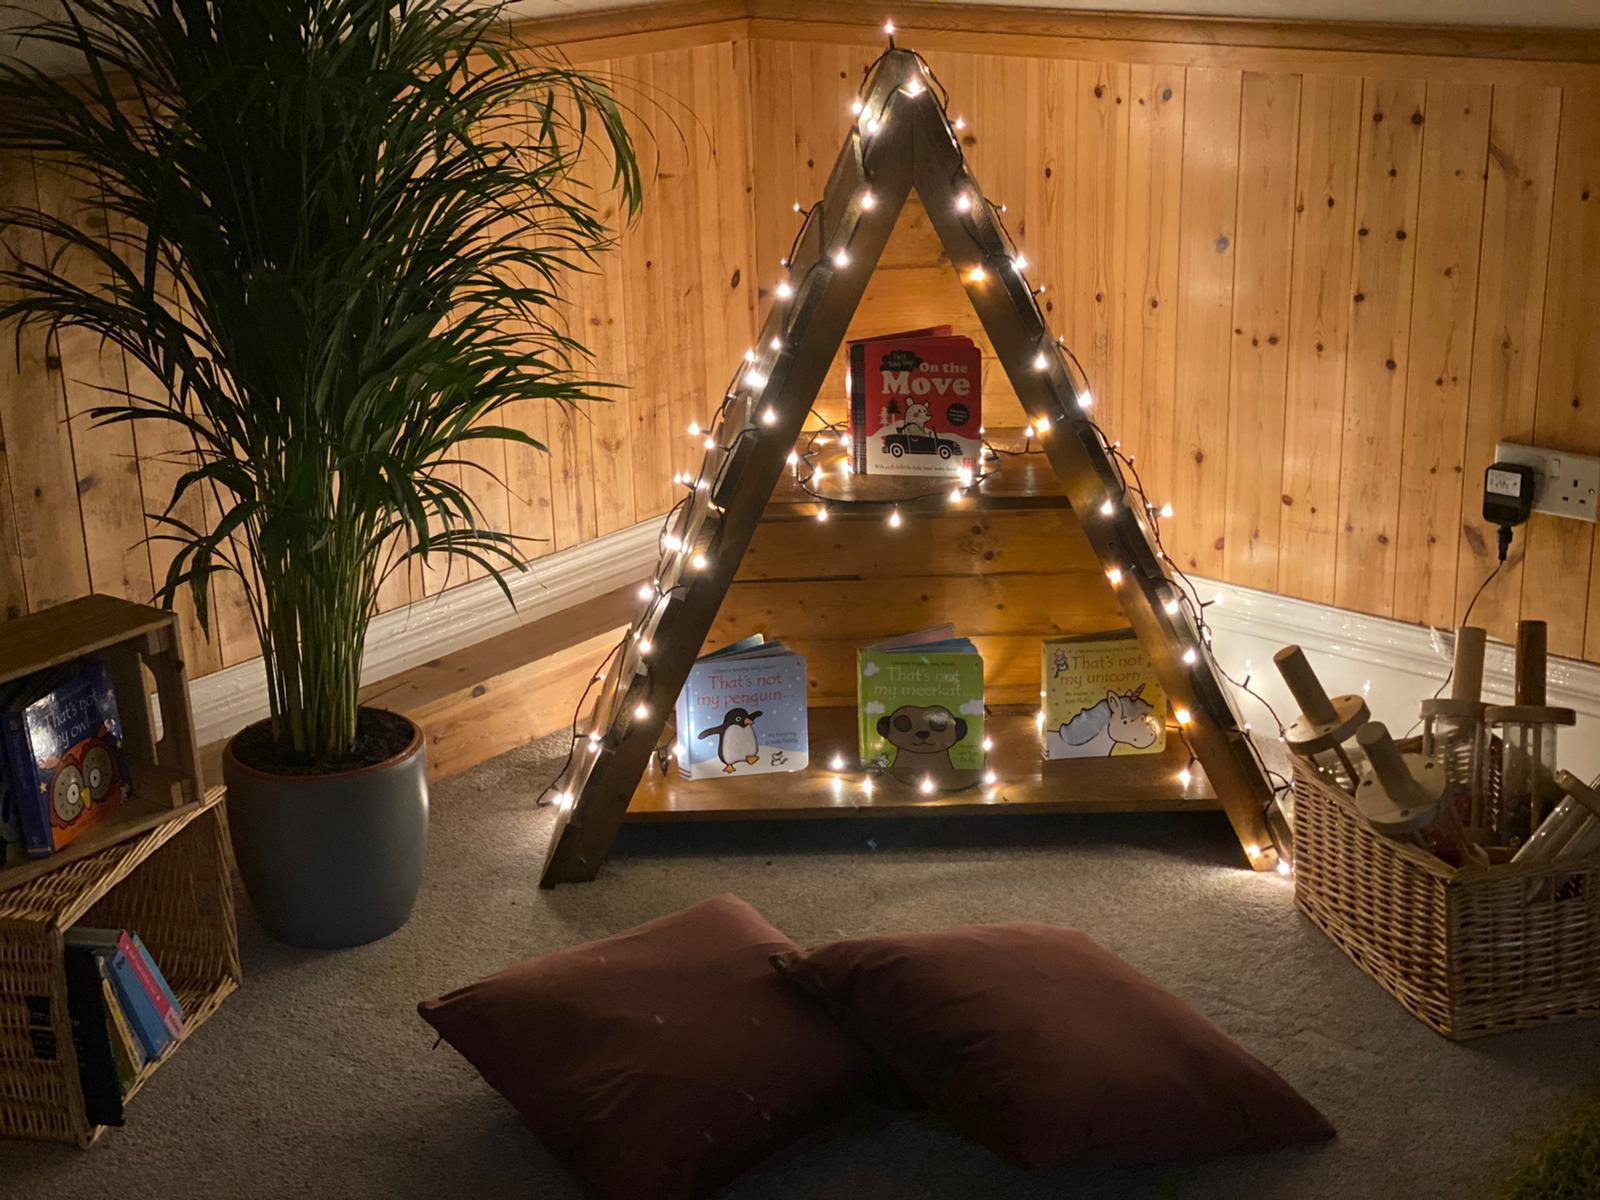 Enabling environment featuring an enchanted house with fairy lights and books